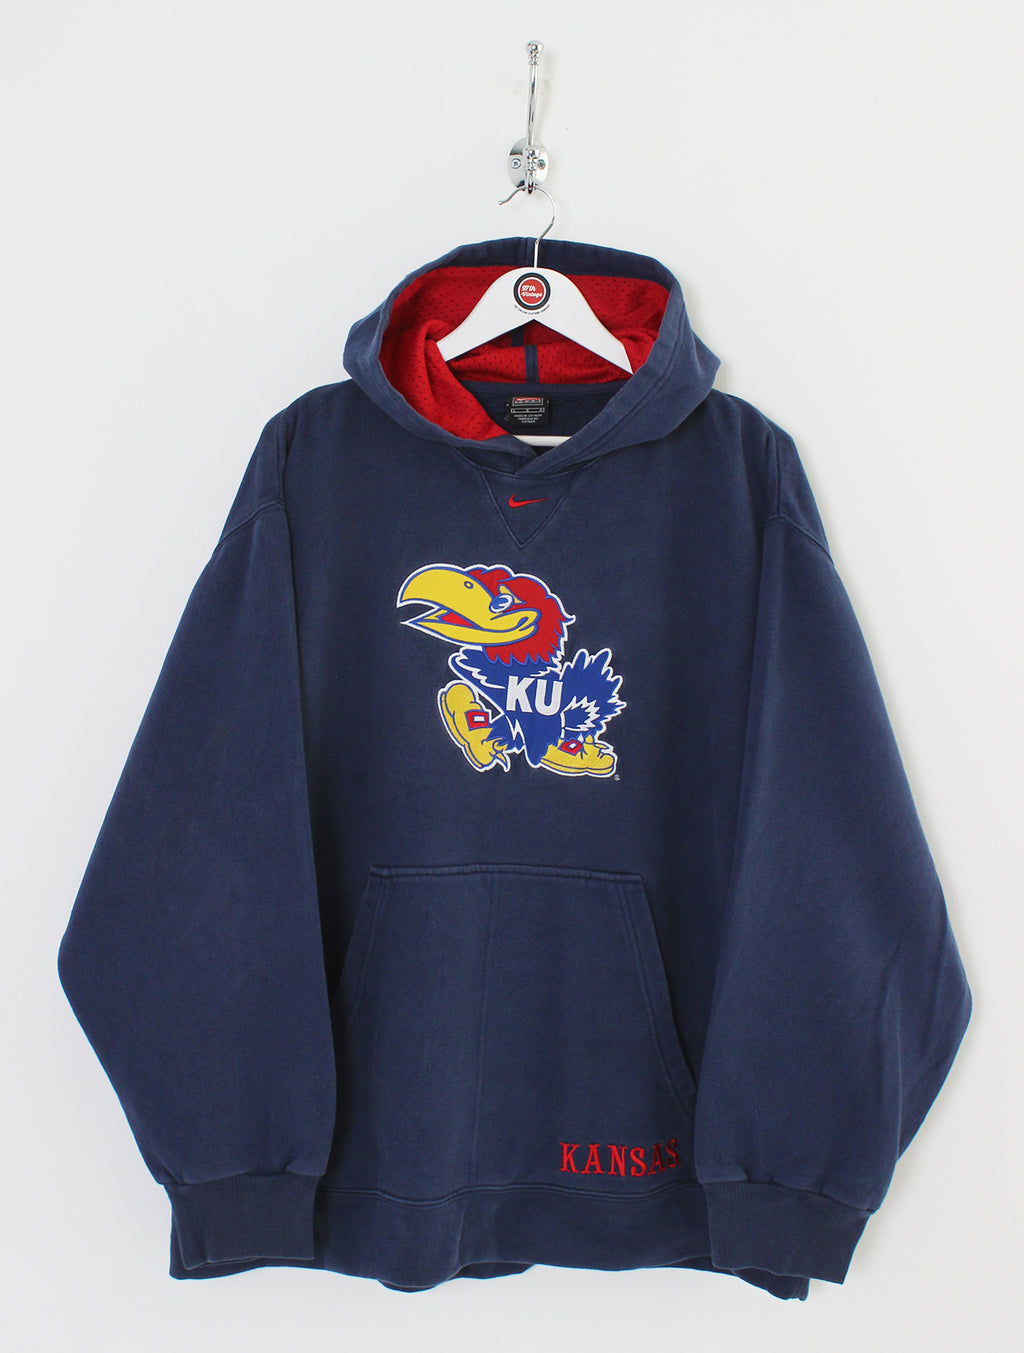 Nike University of Kansas Hoodie (XL)